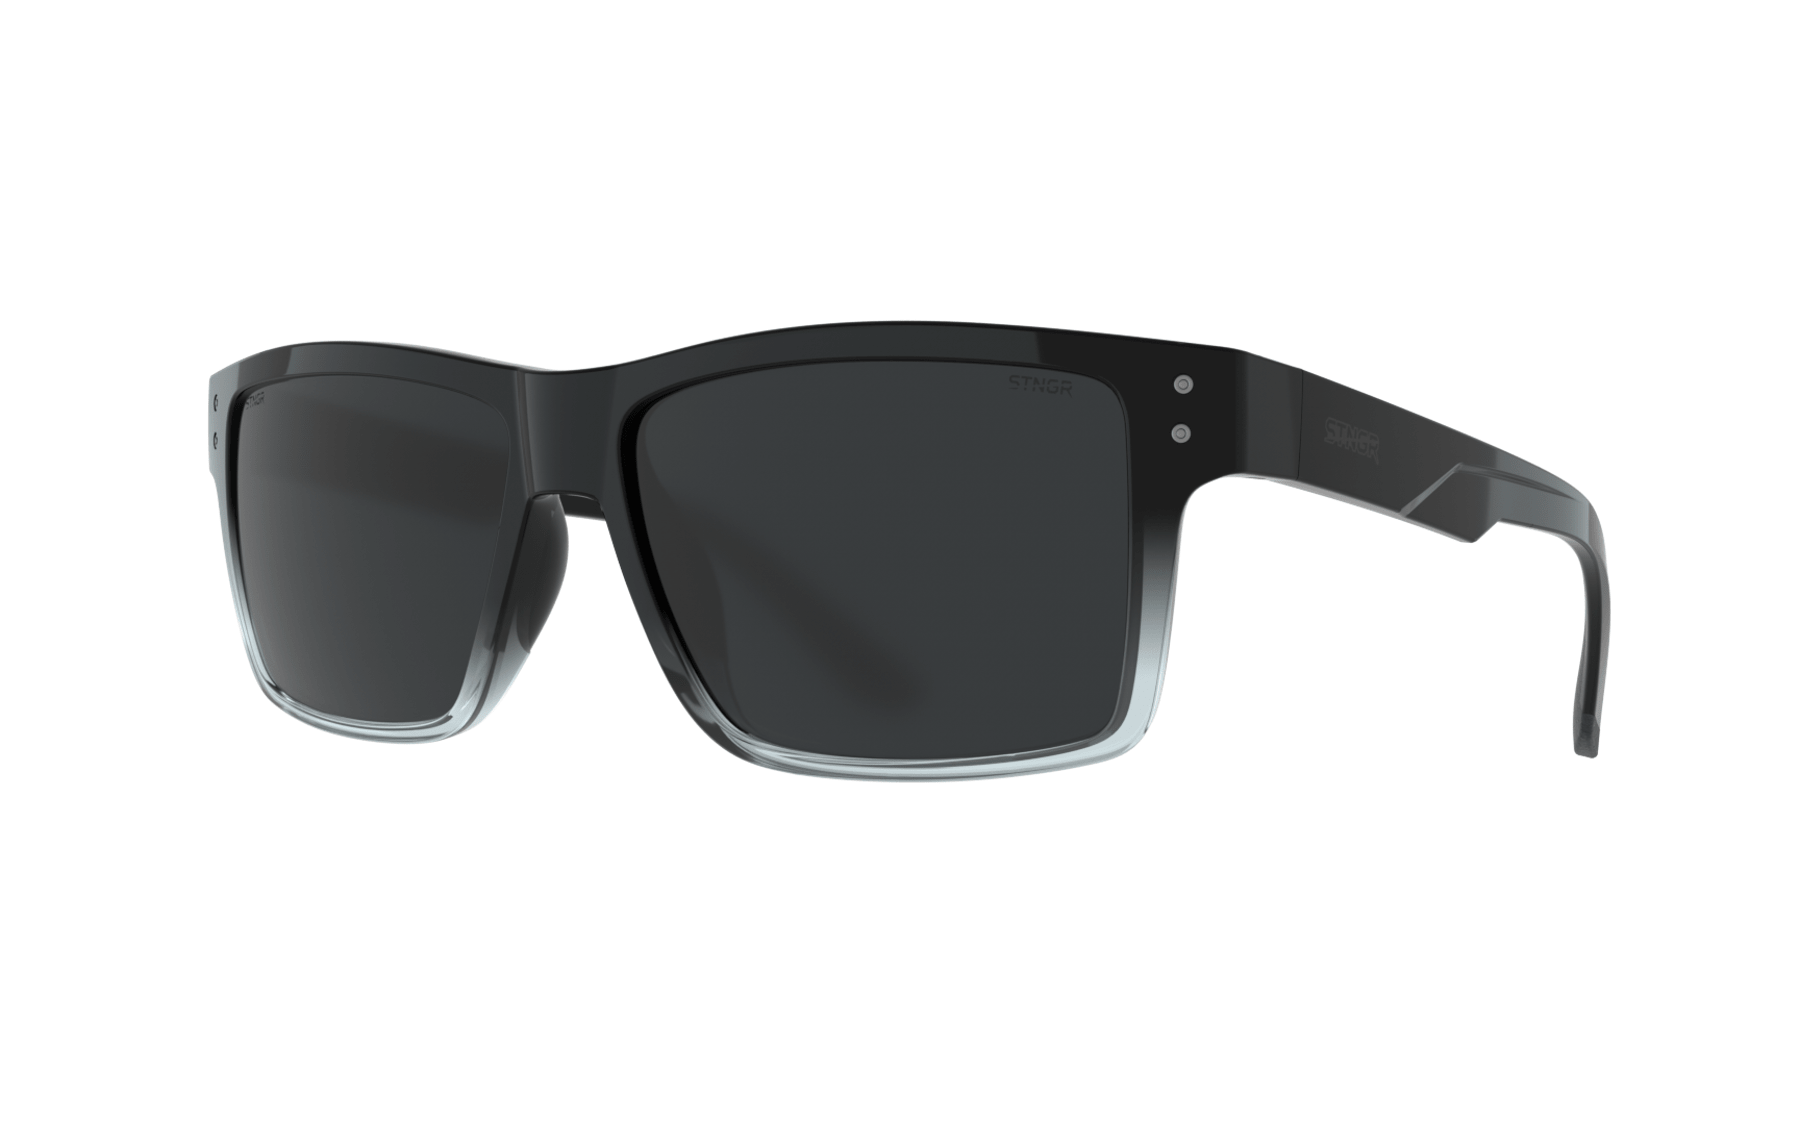 Nomad Lifestyle Sunglasses (NEW)